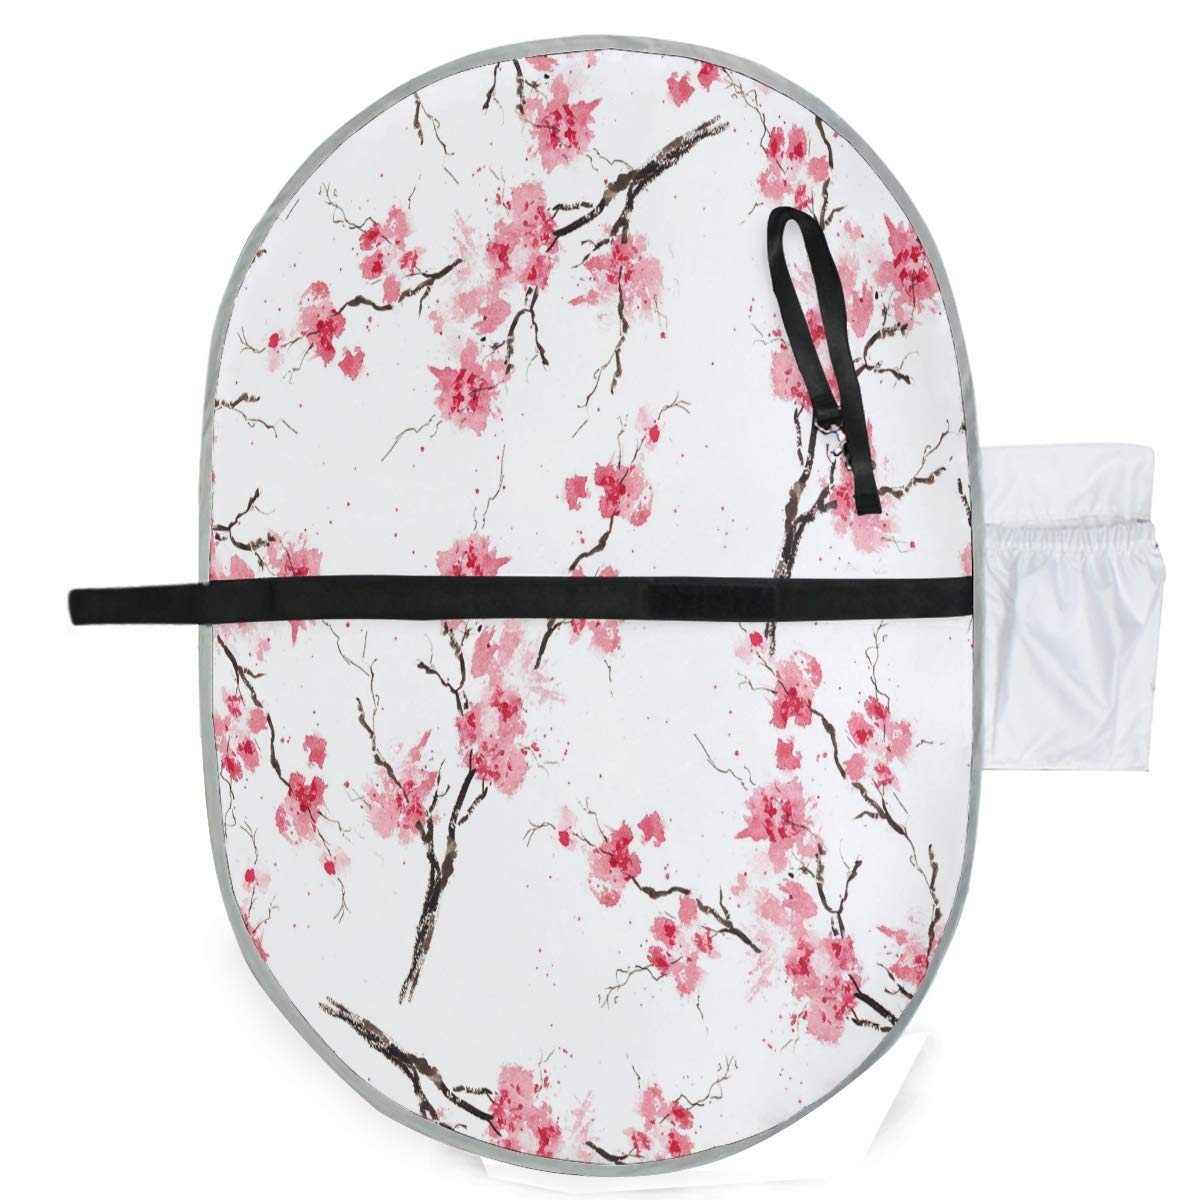 ZZXXB Plum Blossom Baby Portable Changing Pad Waterproof Diaper Change Mat Large for Infant Quick Change